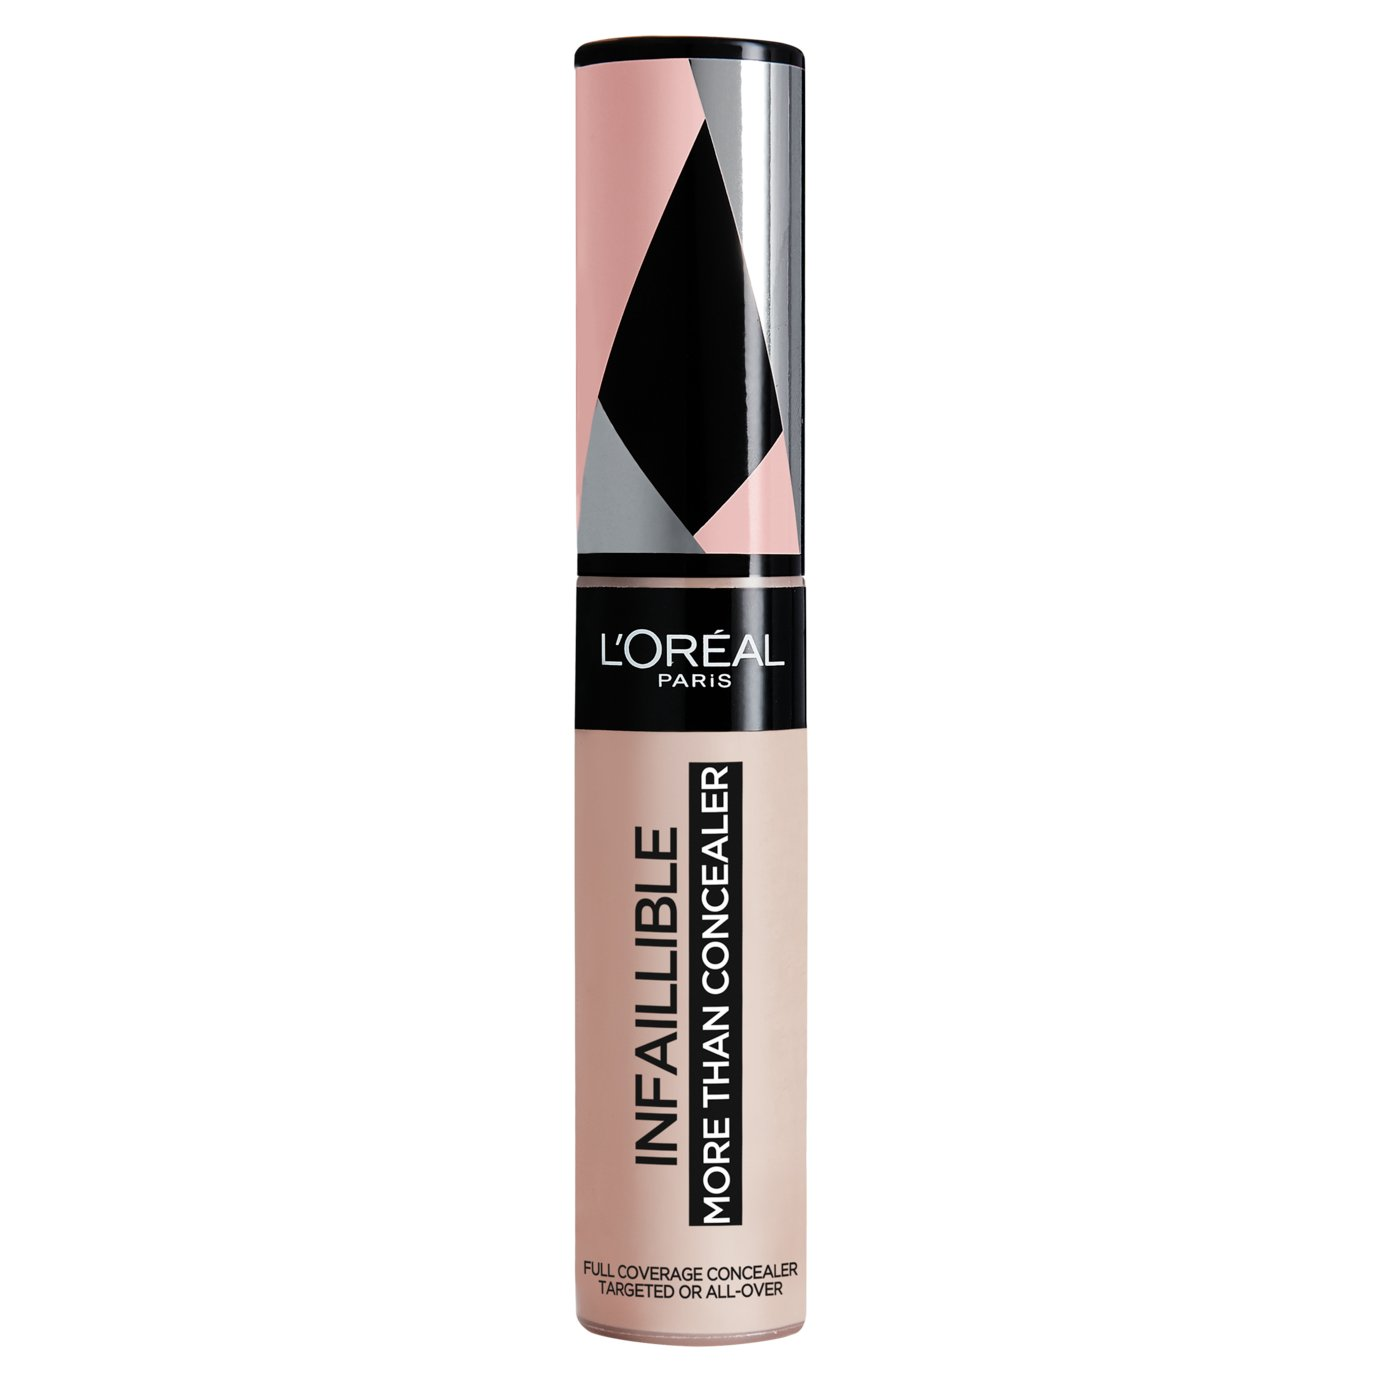 L'Oreal Paris Infallible Concealer Porcelain 320 - 10ml